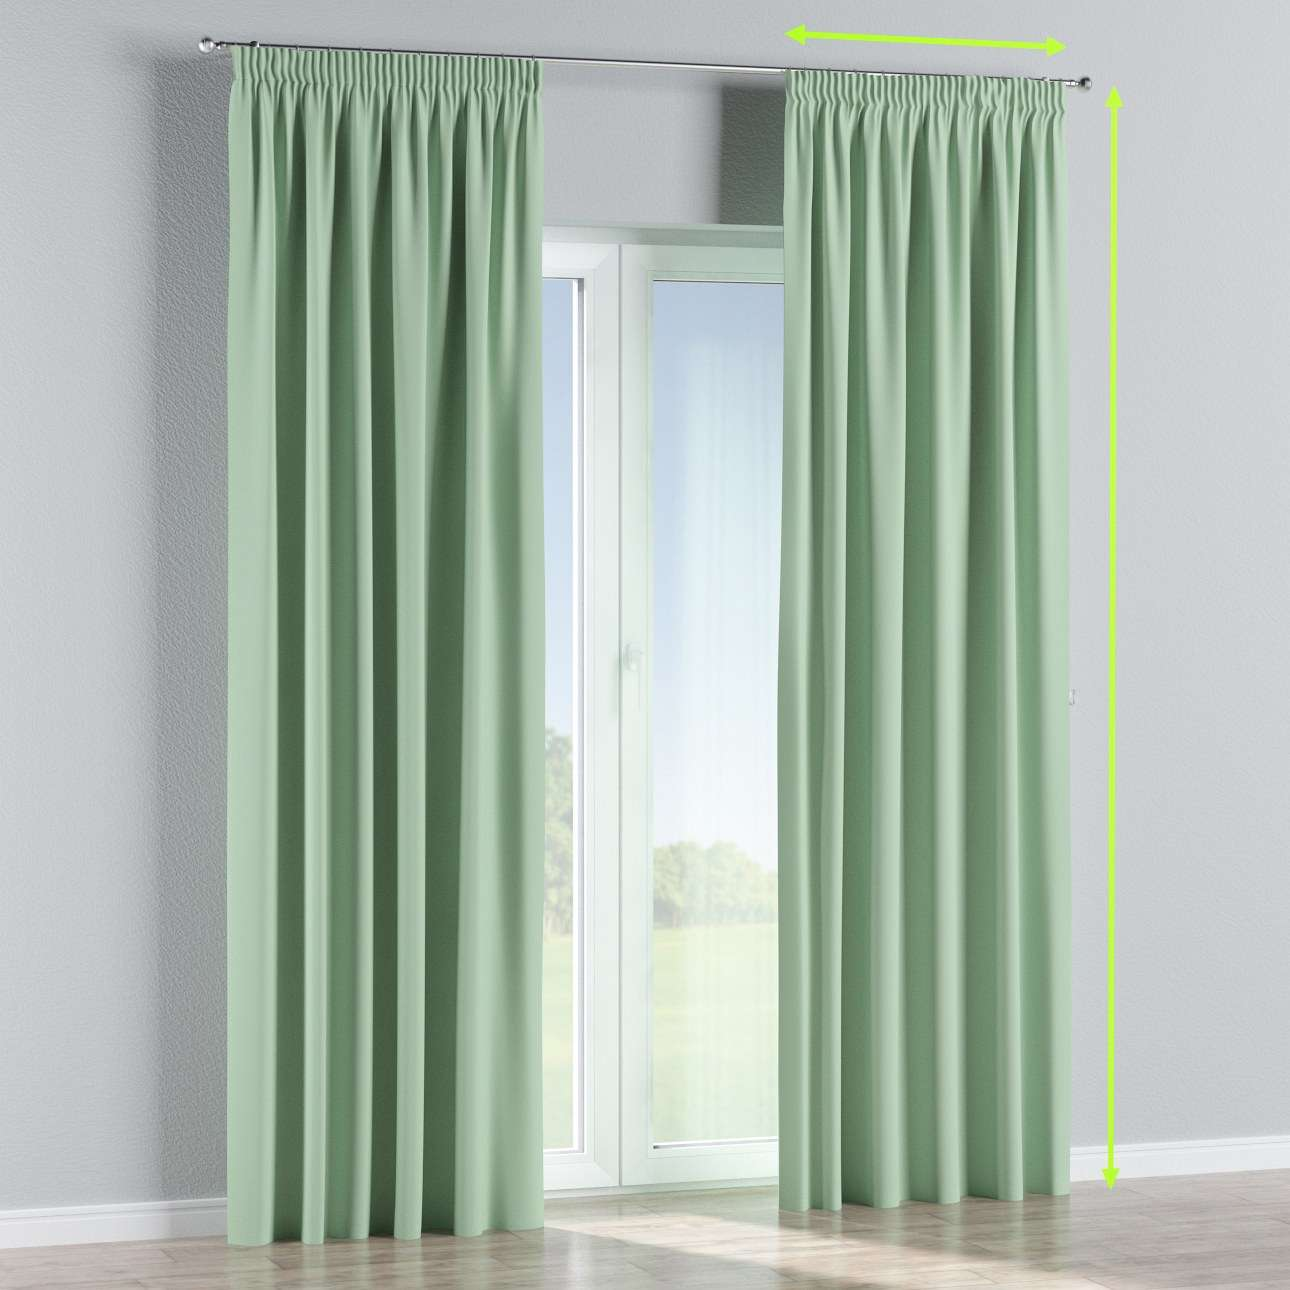 Blackout pencil pleat curtains in collection Blackout, fabric: 269-14